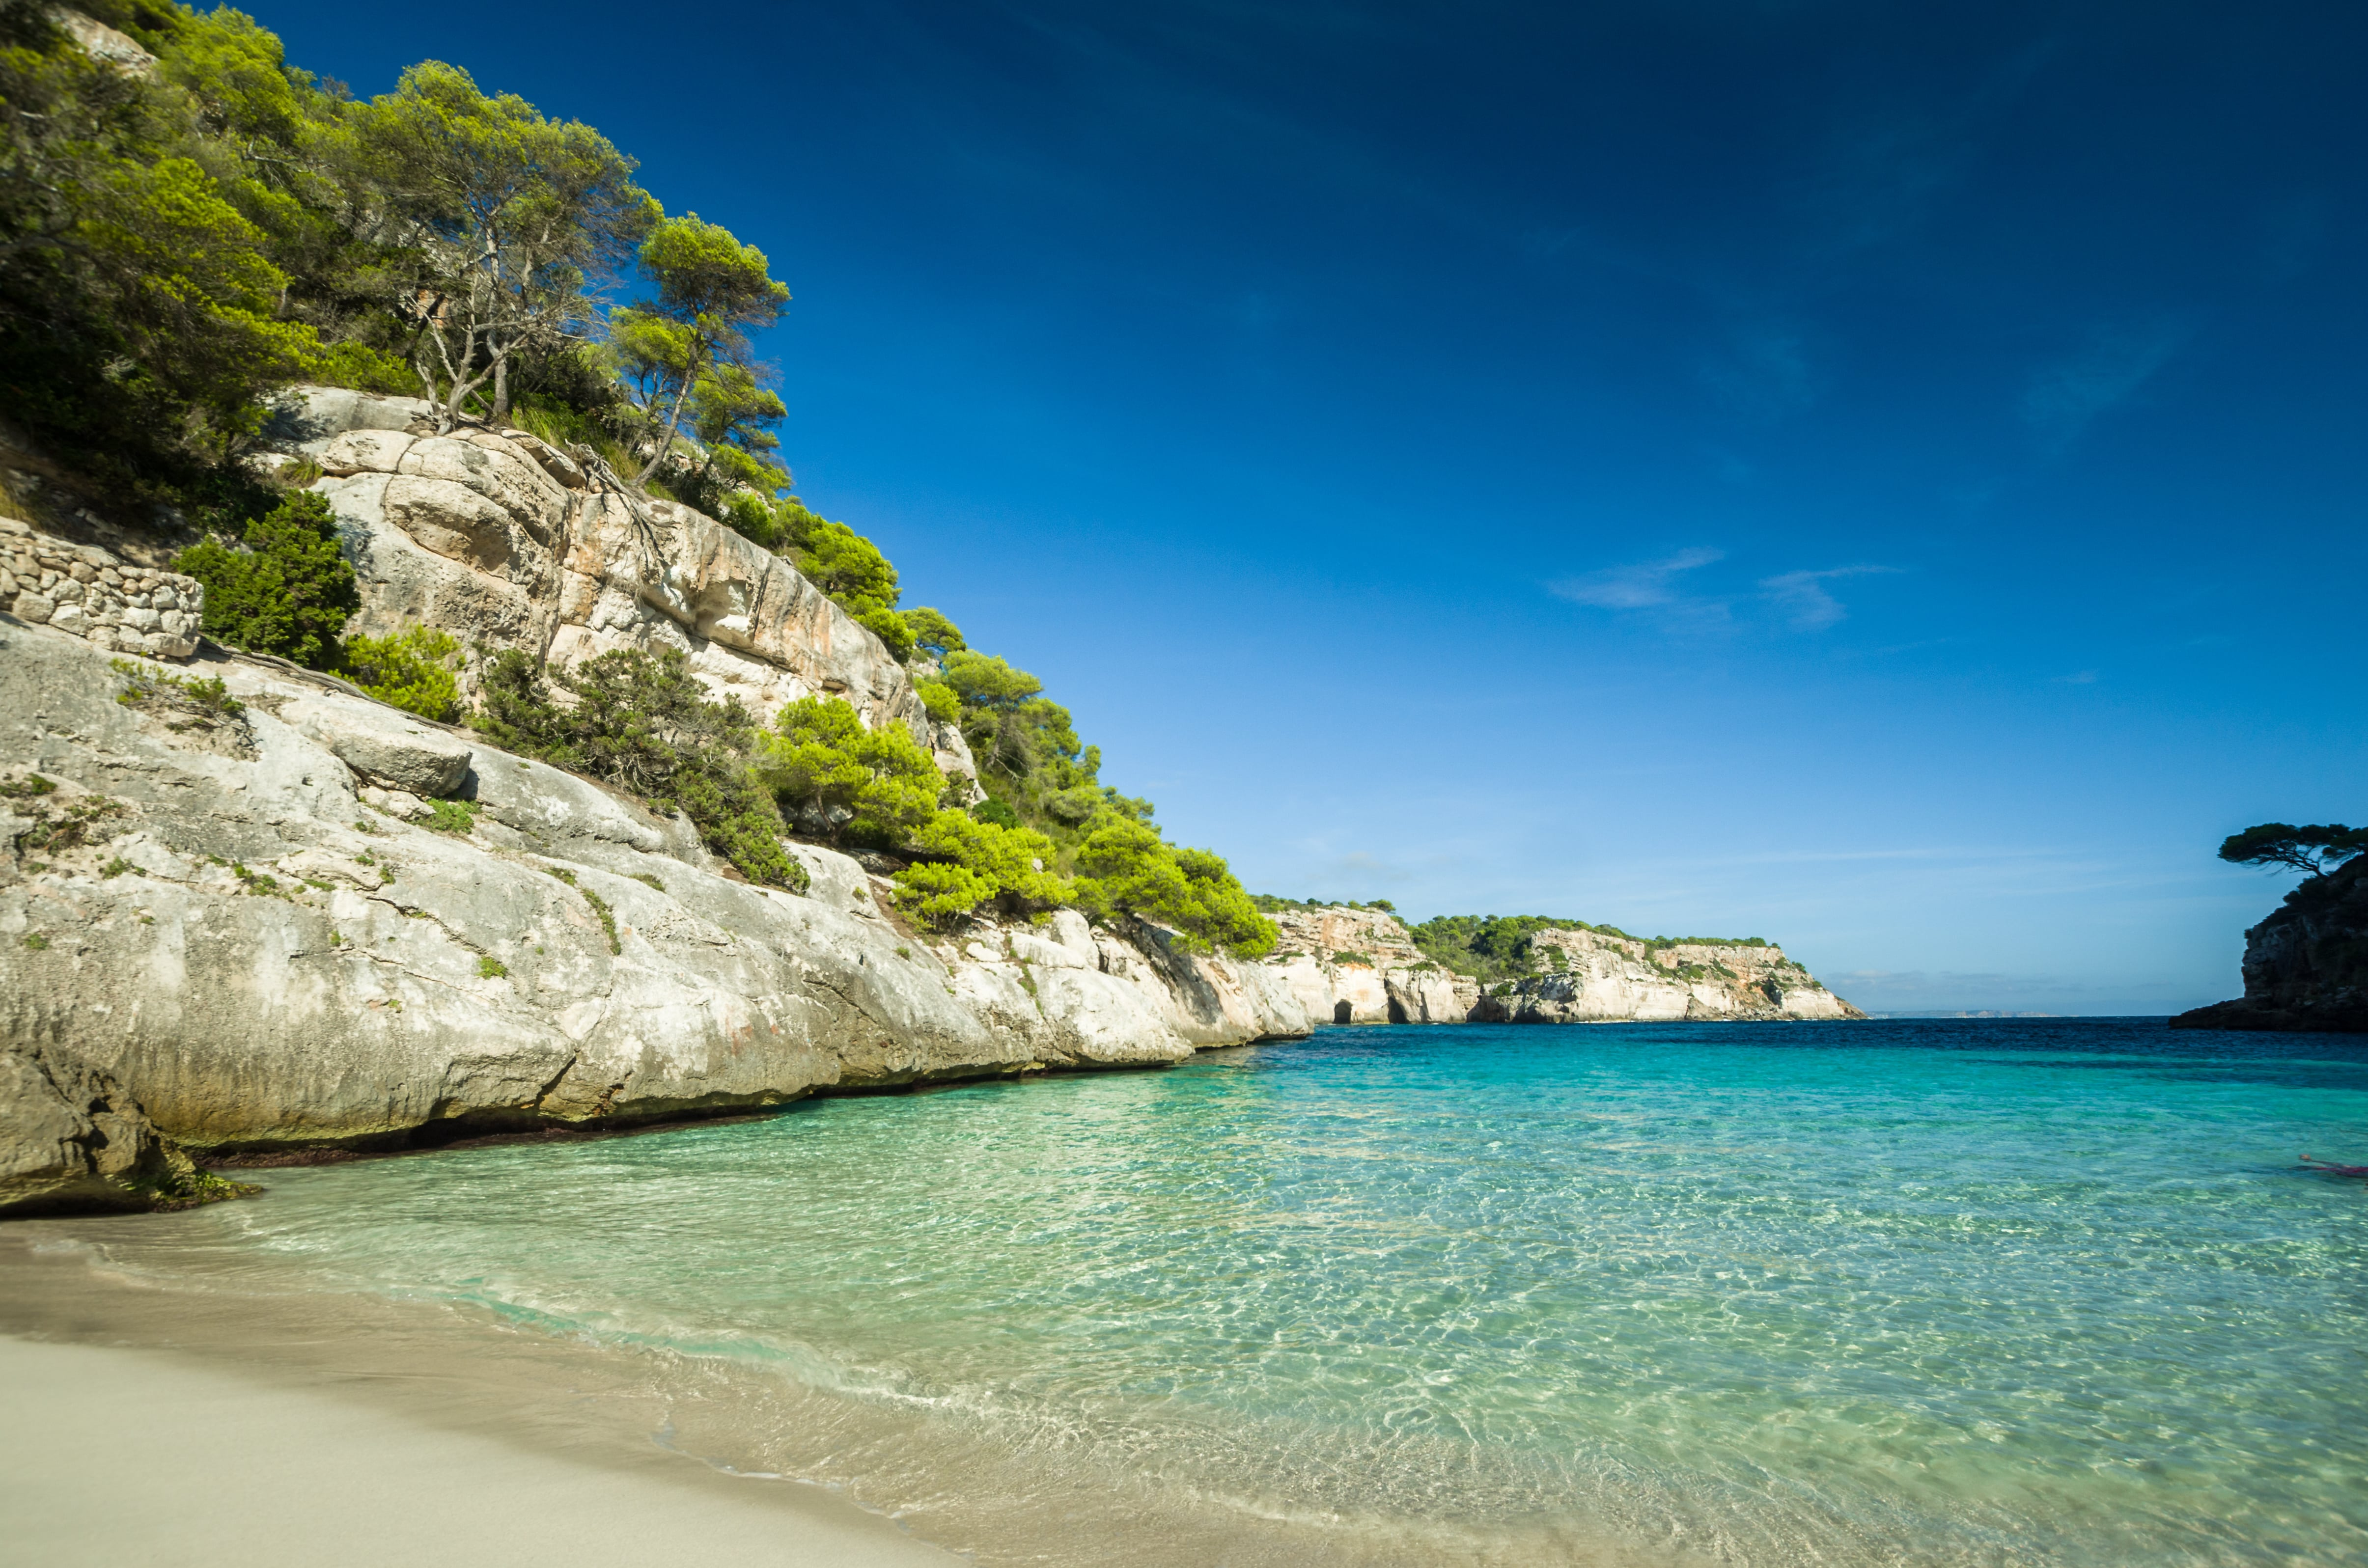 For calm turquoise waters and a charming ambience, head to Menorca's Cala Macarella